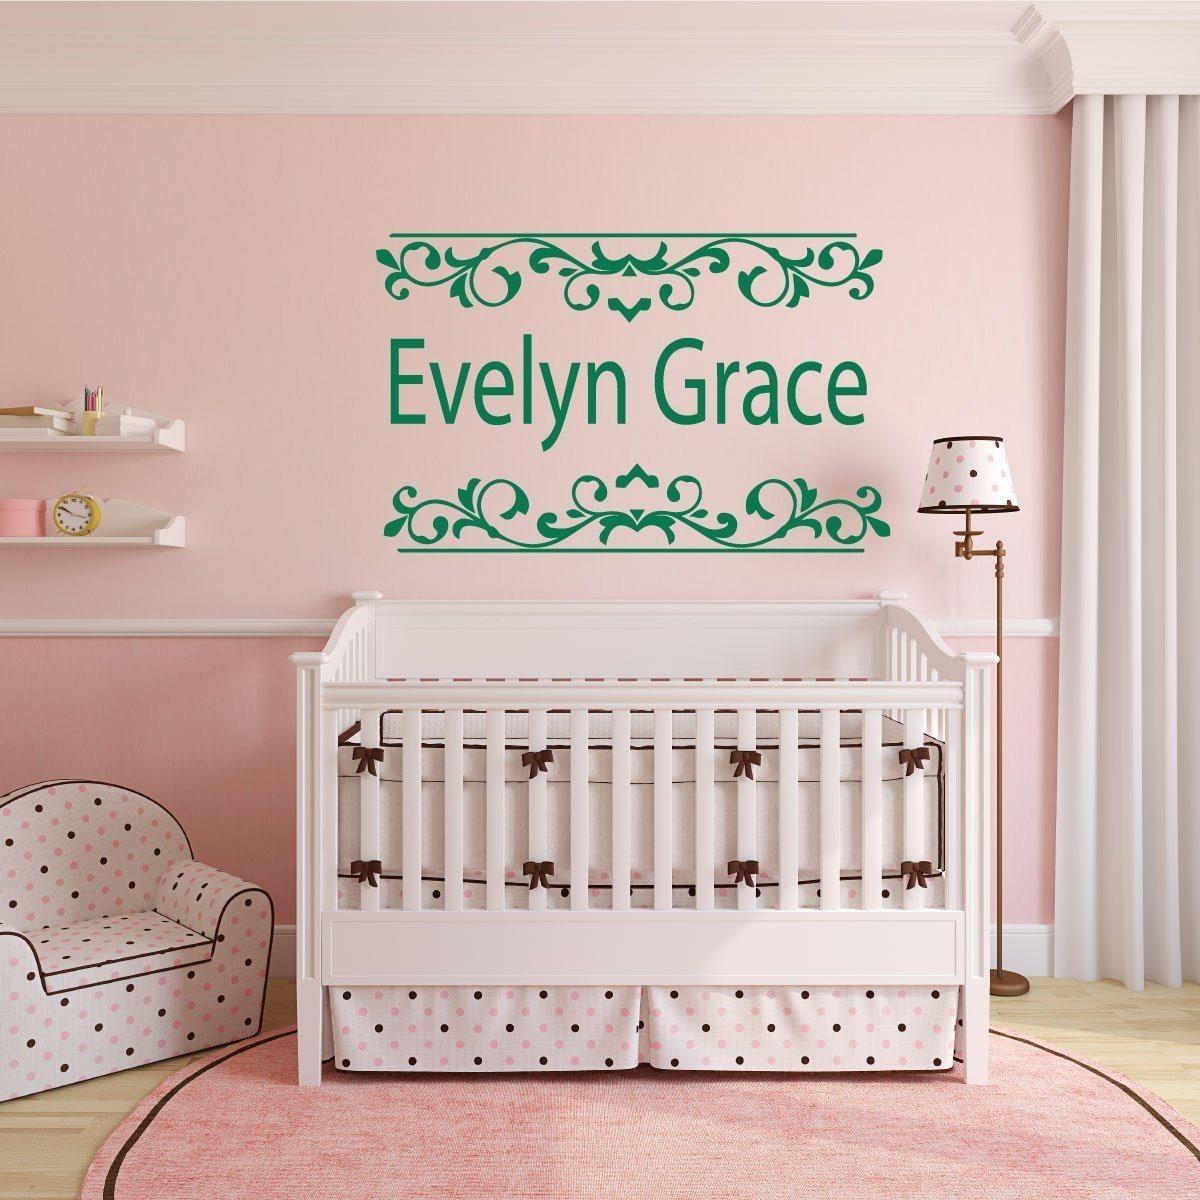 Personalized Name Art - Girls Room Wall Decals - Vinyl Wall ...